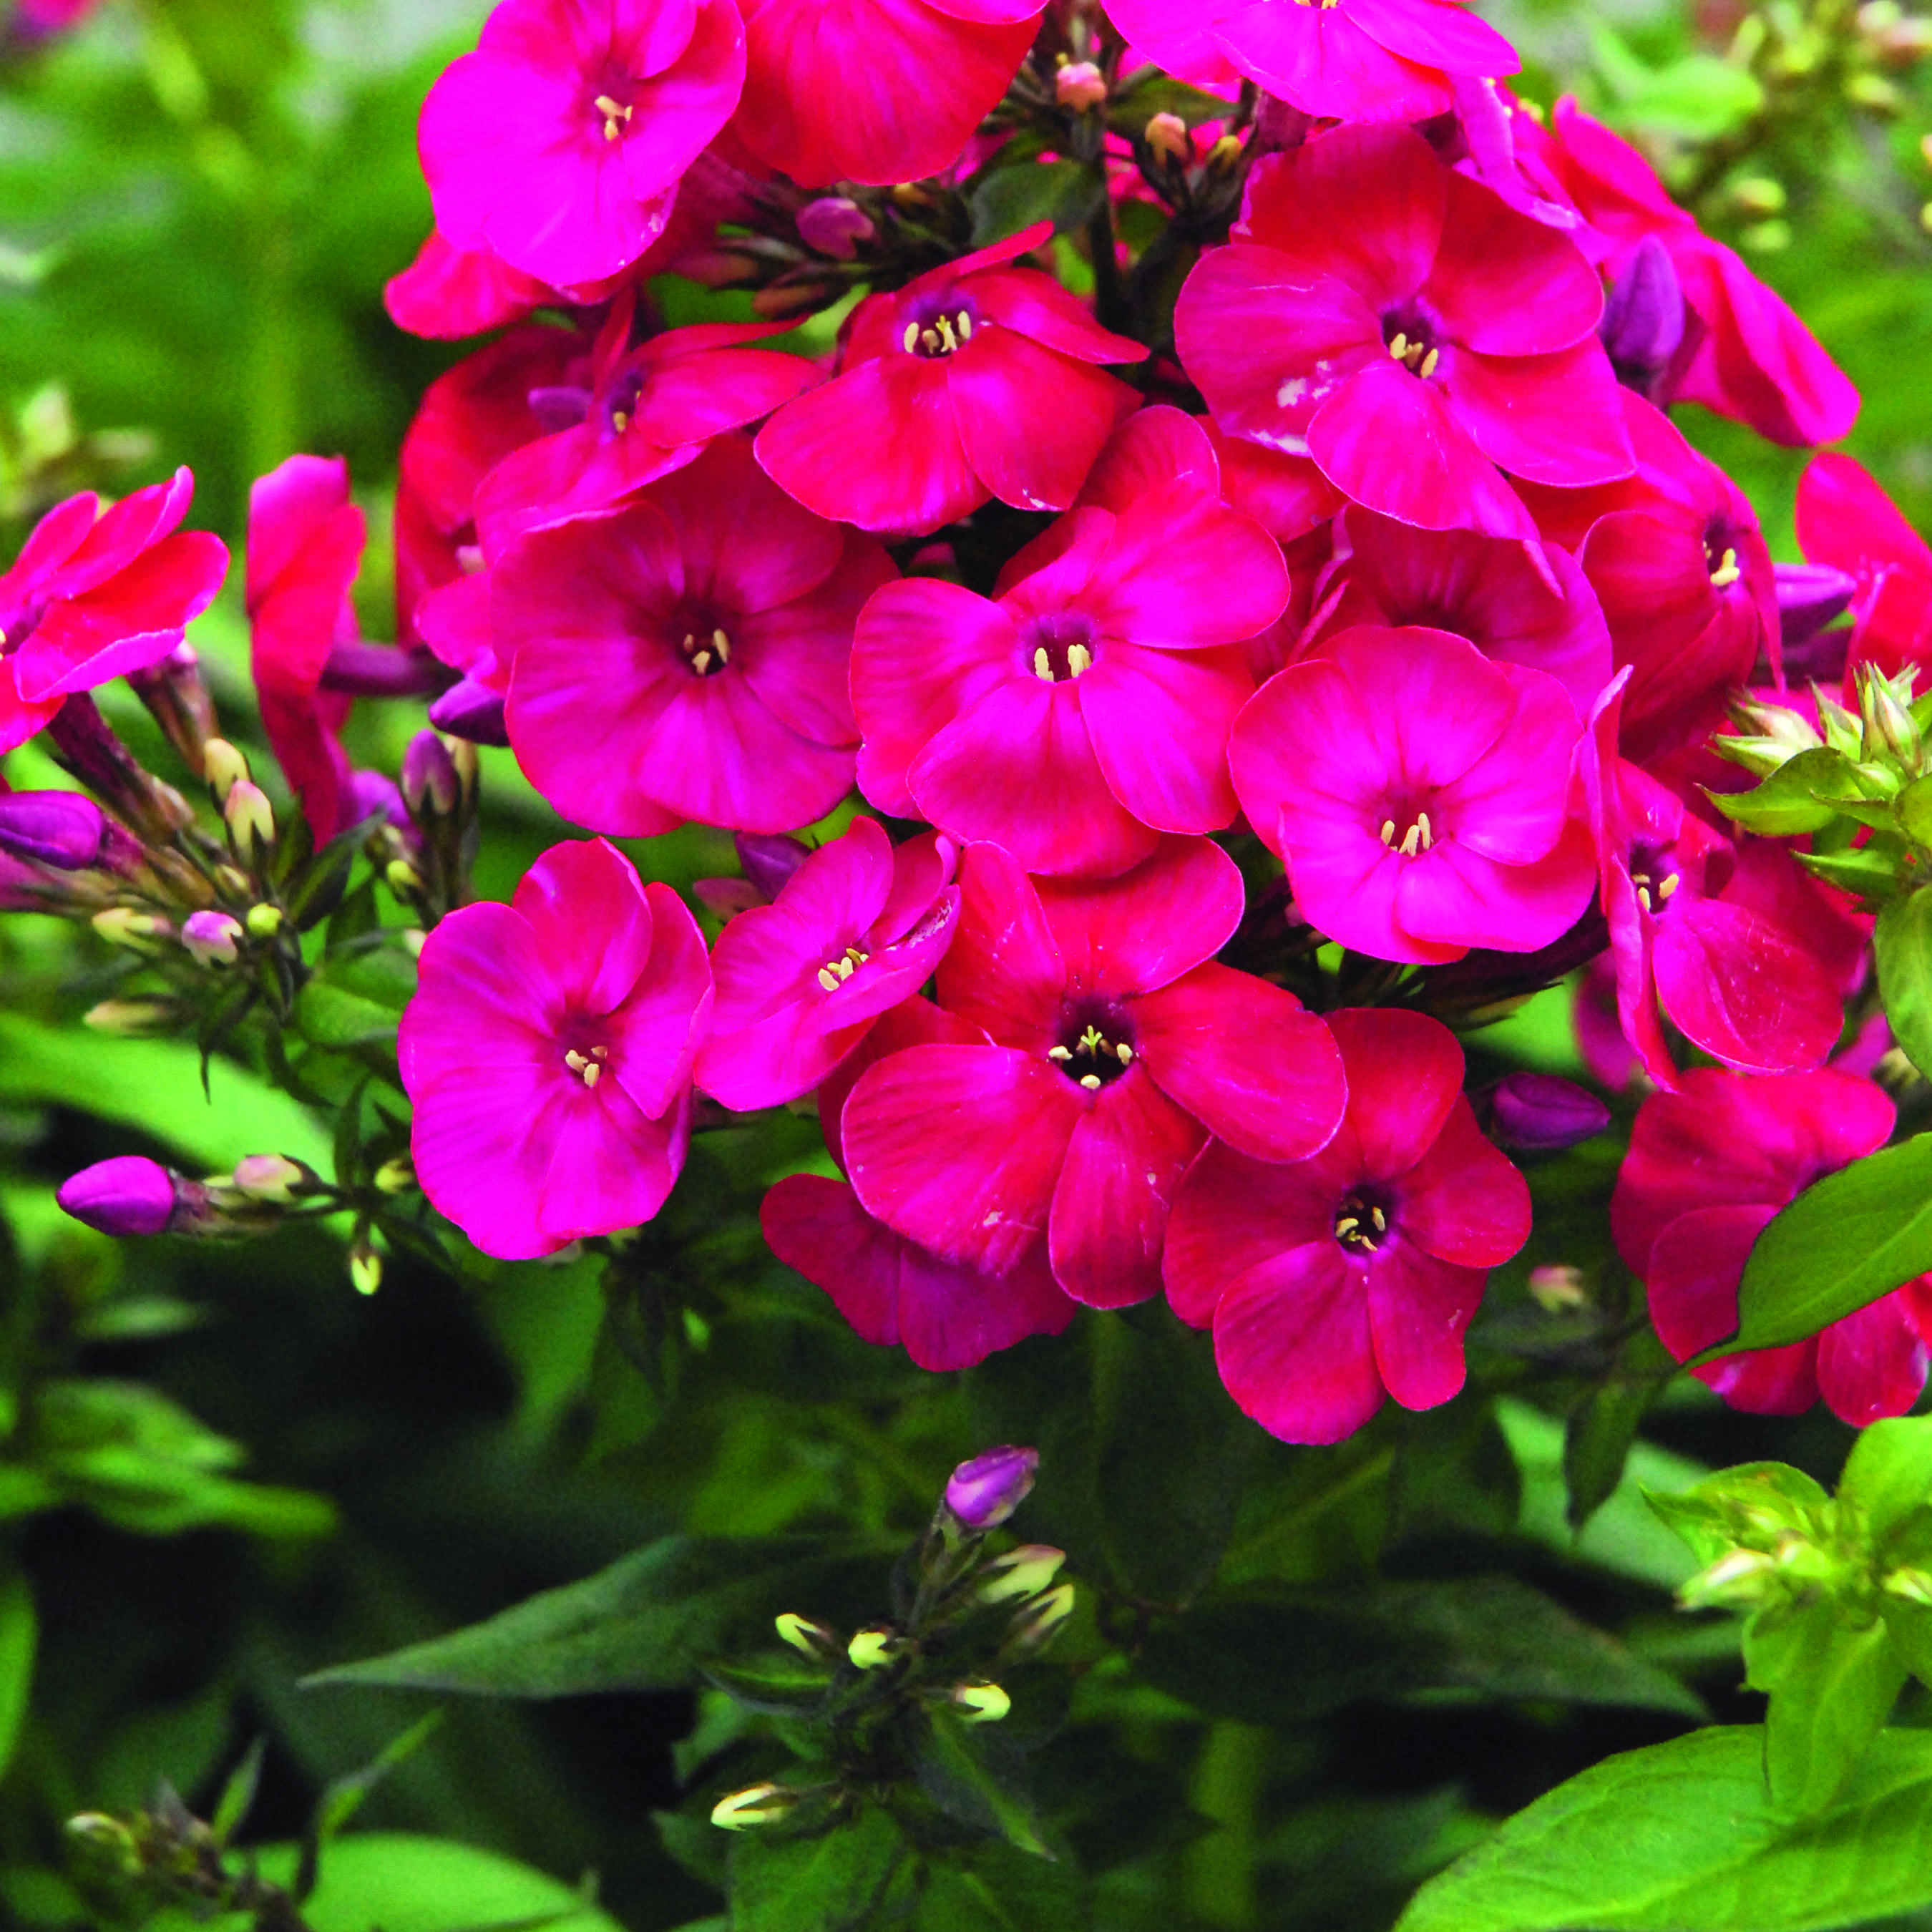 Seeing red: incorporating colour into your garden - Volcano Phlox (red)